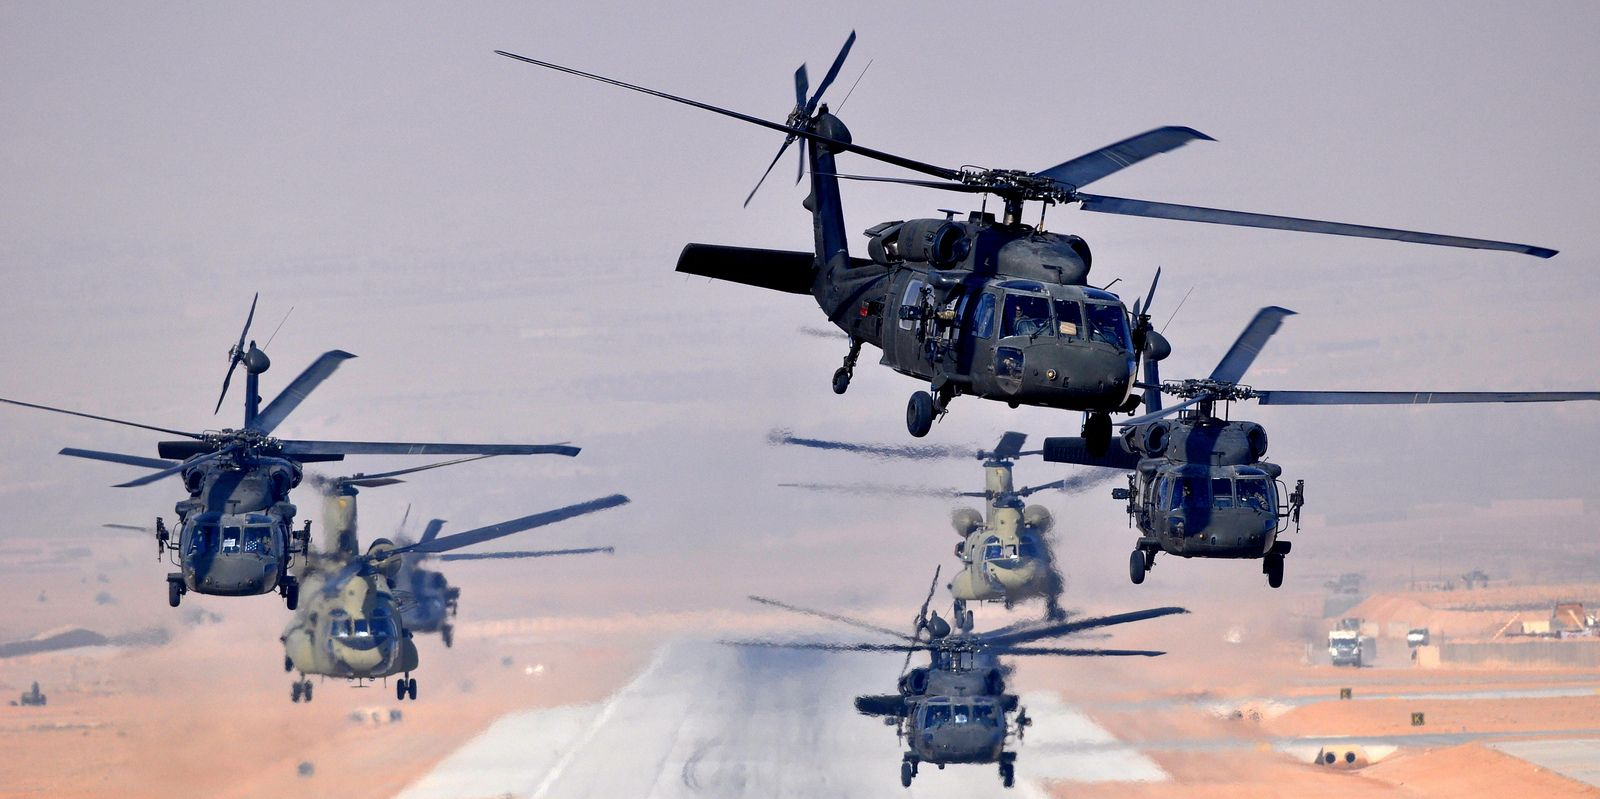 Six UH-60L and two CH-47F Chinooks, assigned to Task Force Brawler, 4th Battalion, 3rd Aviation Regiment